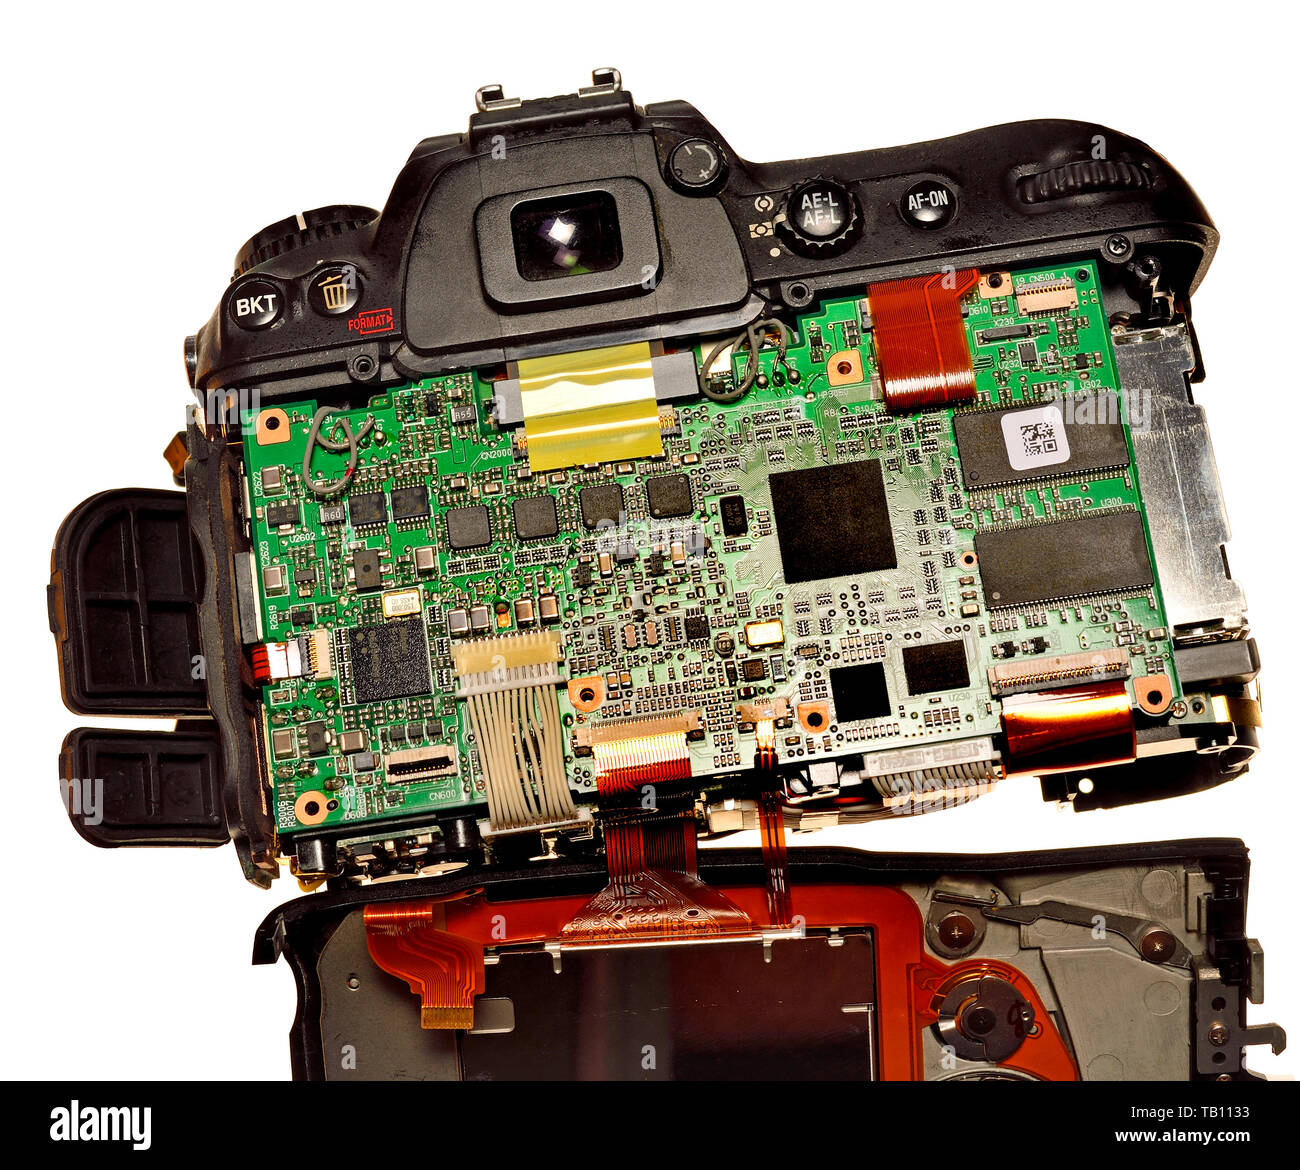 Workings of a digital camera (Nikon D200) with the back removed - Stock Image